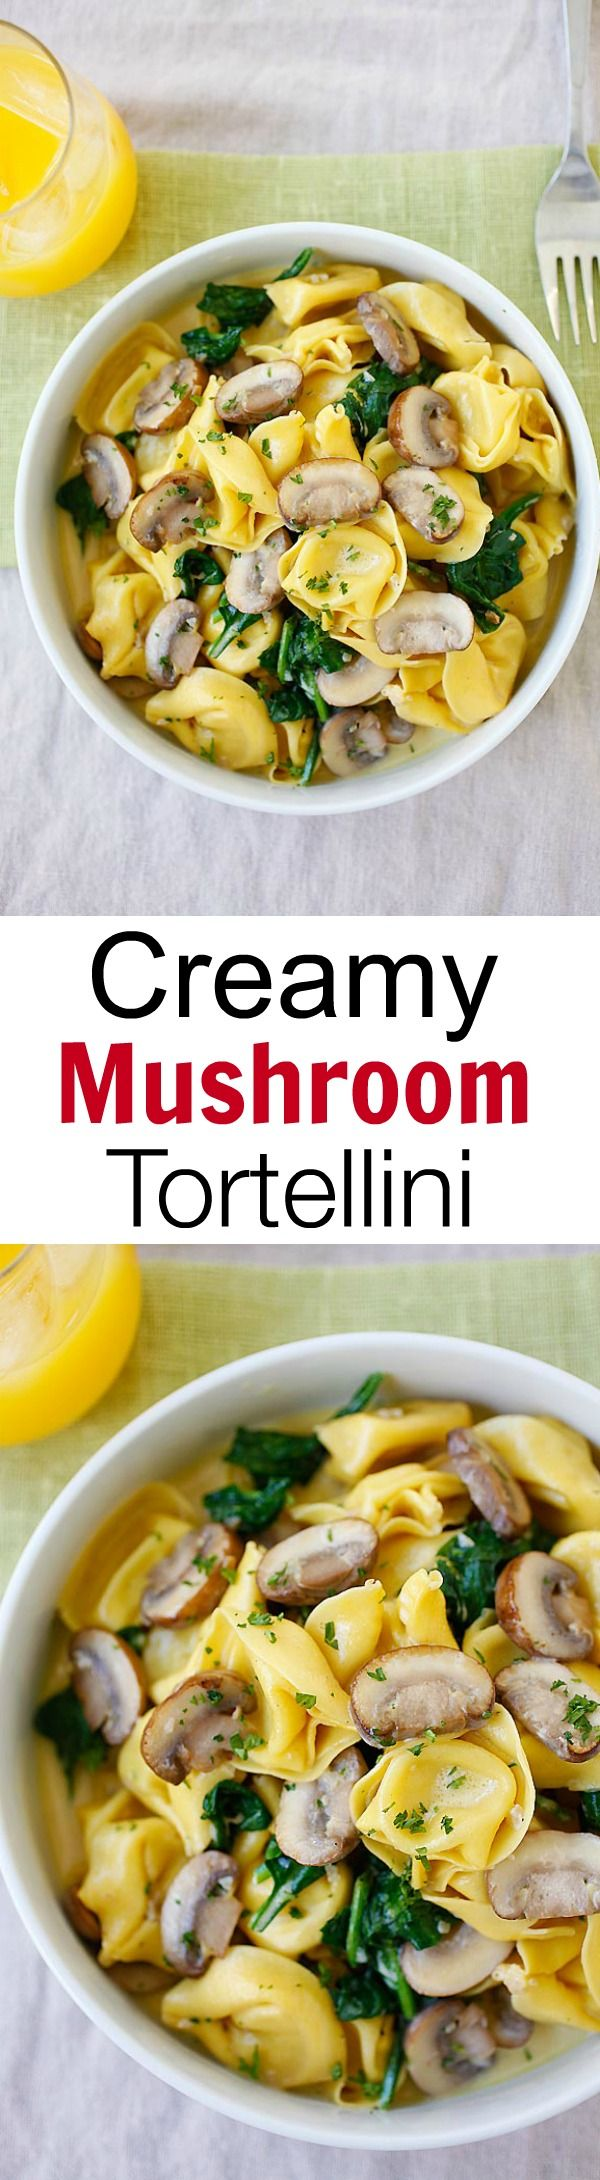 Creamy Mushroom Tortellini – the creamiest and most delicious tortellini recipe with rich buttery mushroom sauce. Quick, easy and budget-friendly!! | rasamalaysia.com